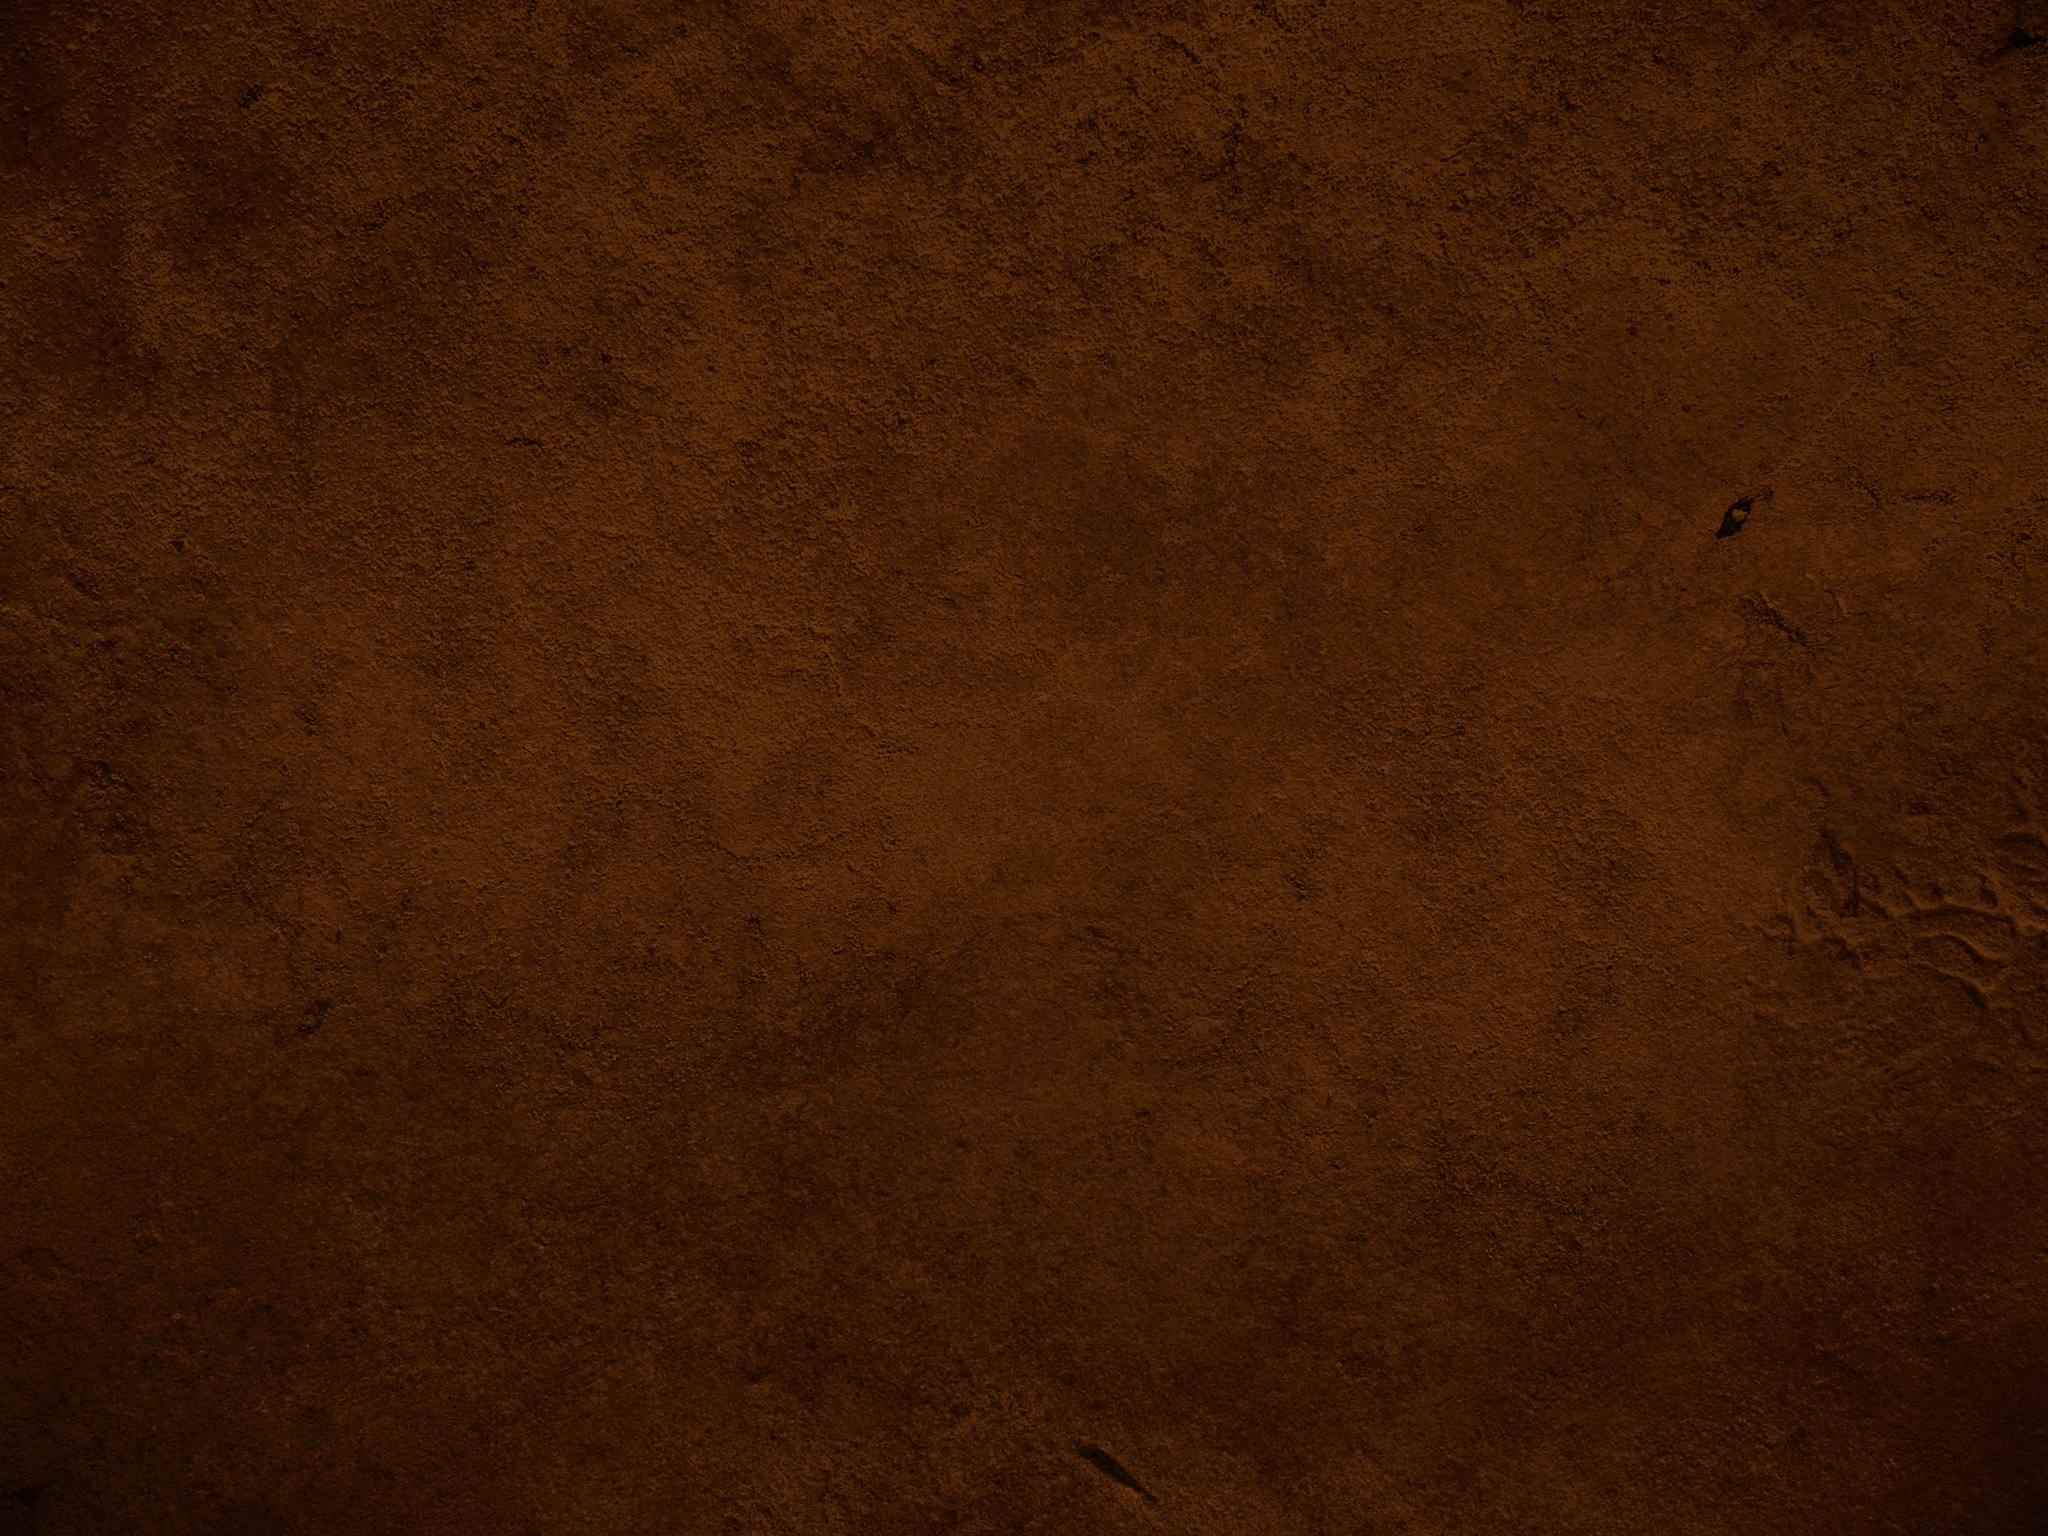 Images of Brown | 2048x1536